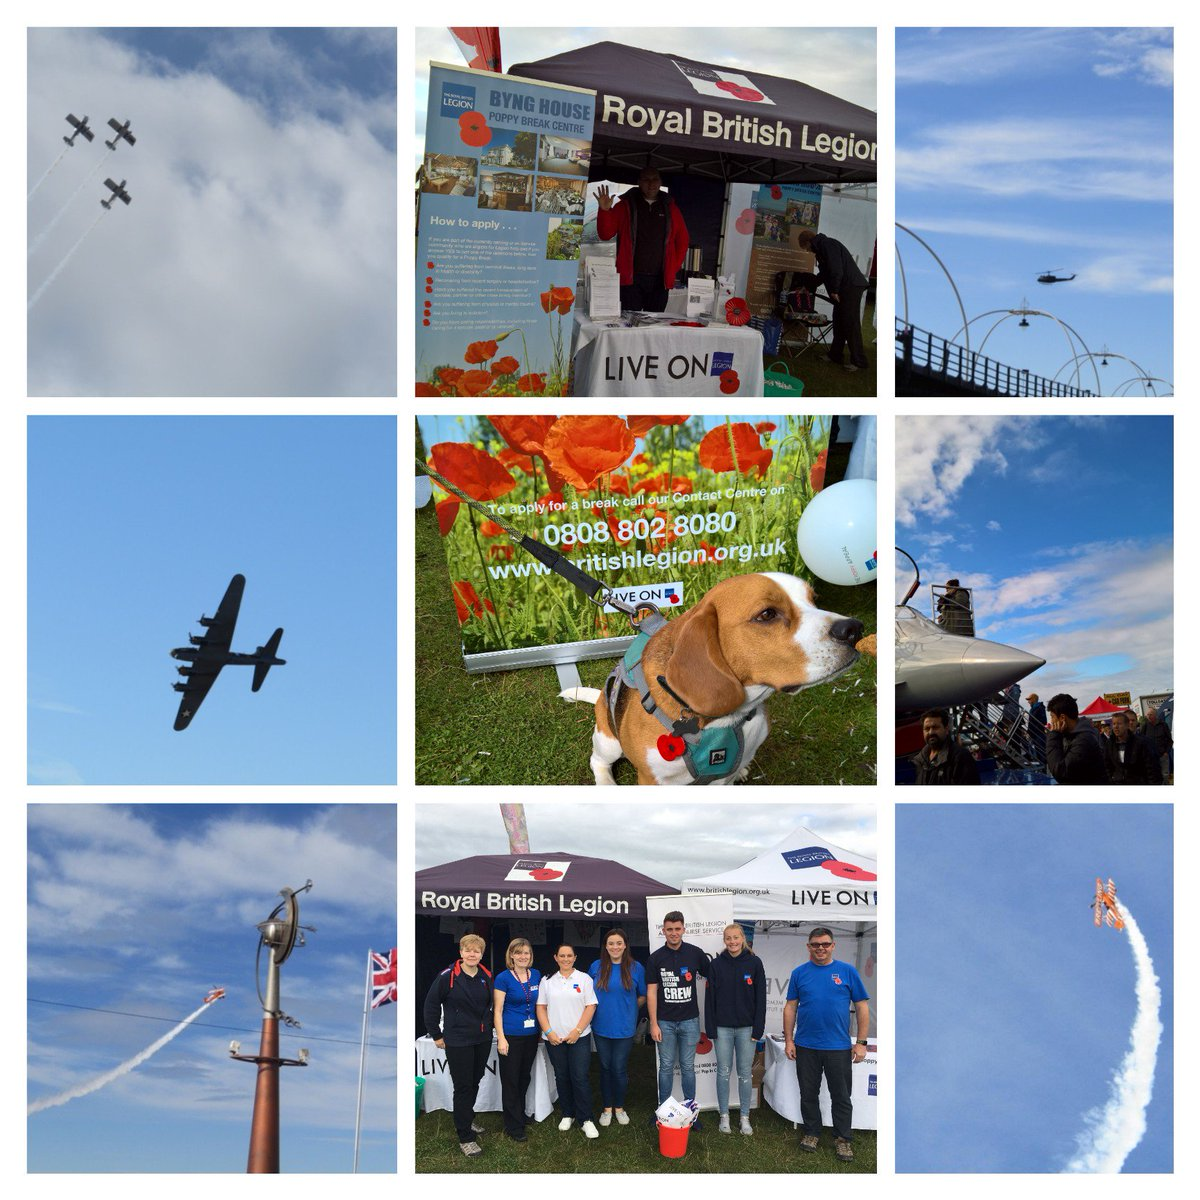 Thank you to everyone that came to visit us at the Air Show. #bynghouse #southportairshow #royalbritishlegion #poppydog #poppybreak #poppy<br>http://pic.twitter.com/OOnwKjxJ9Q